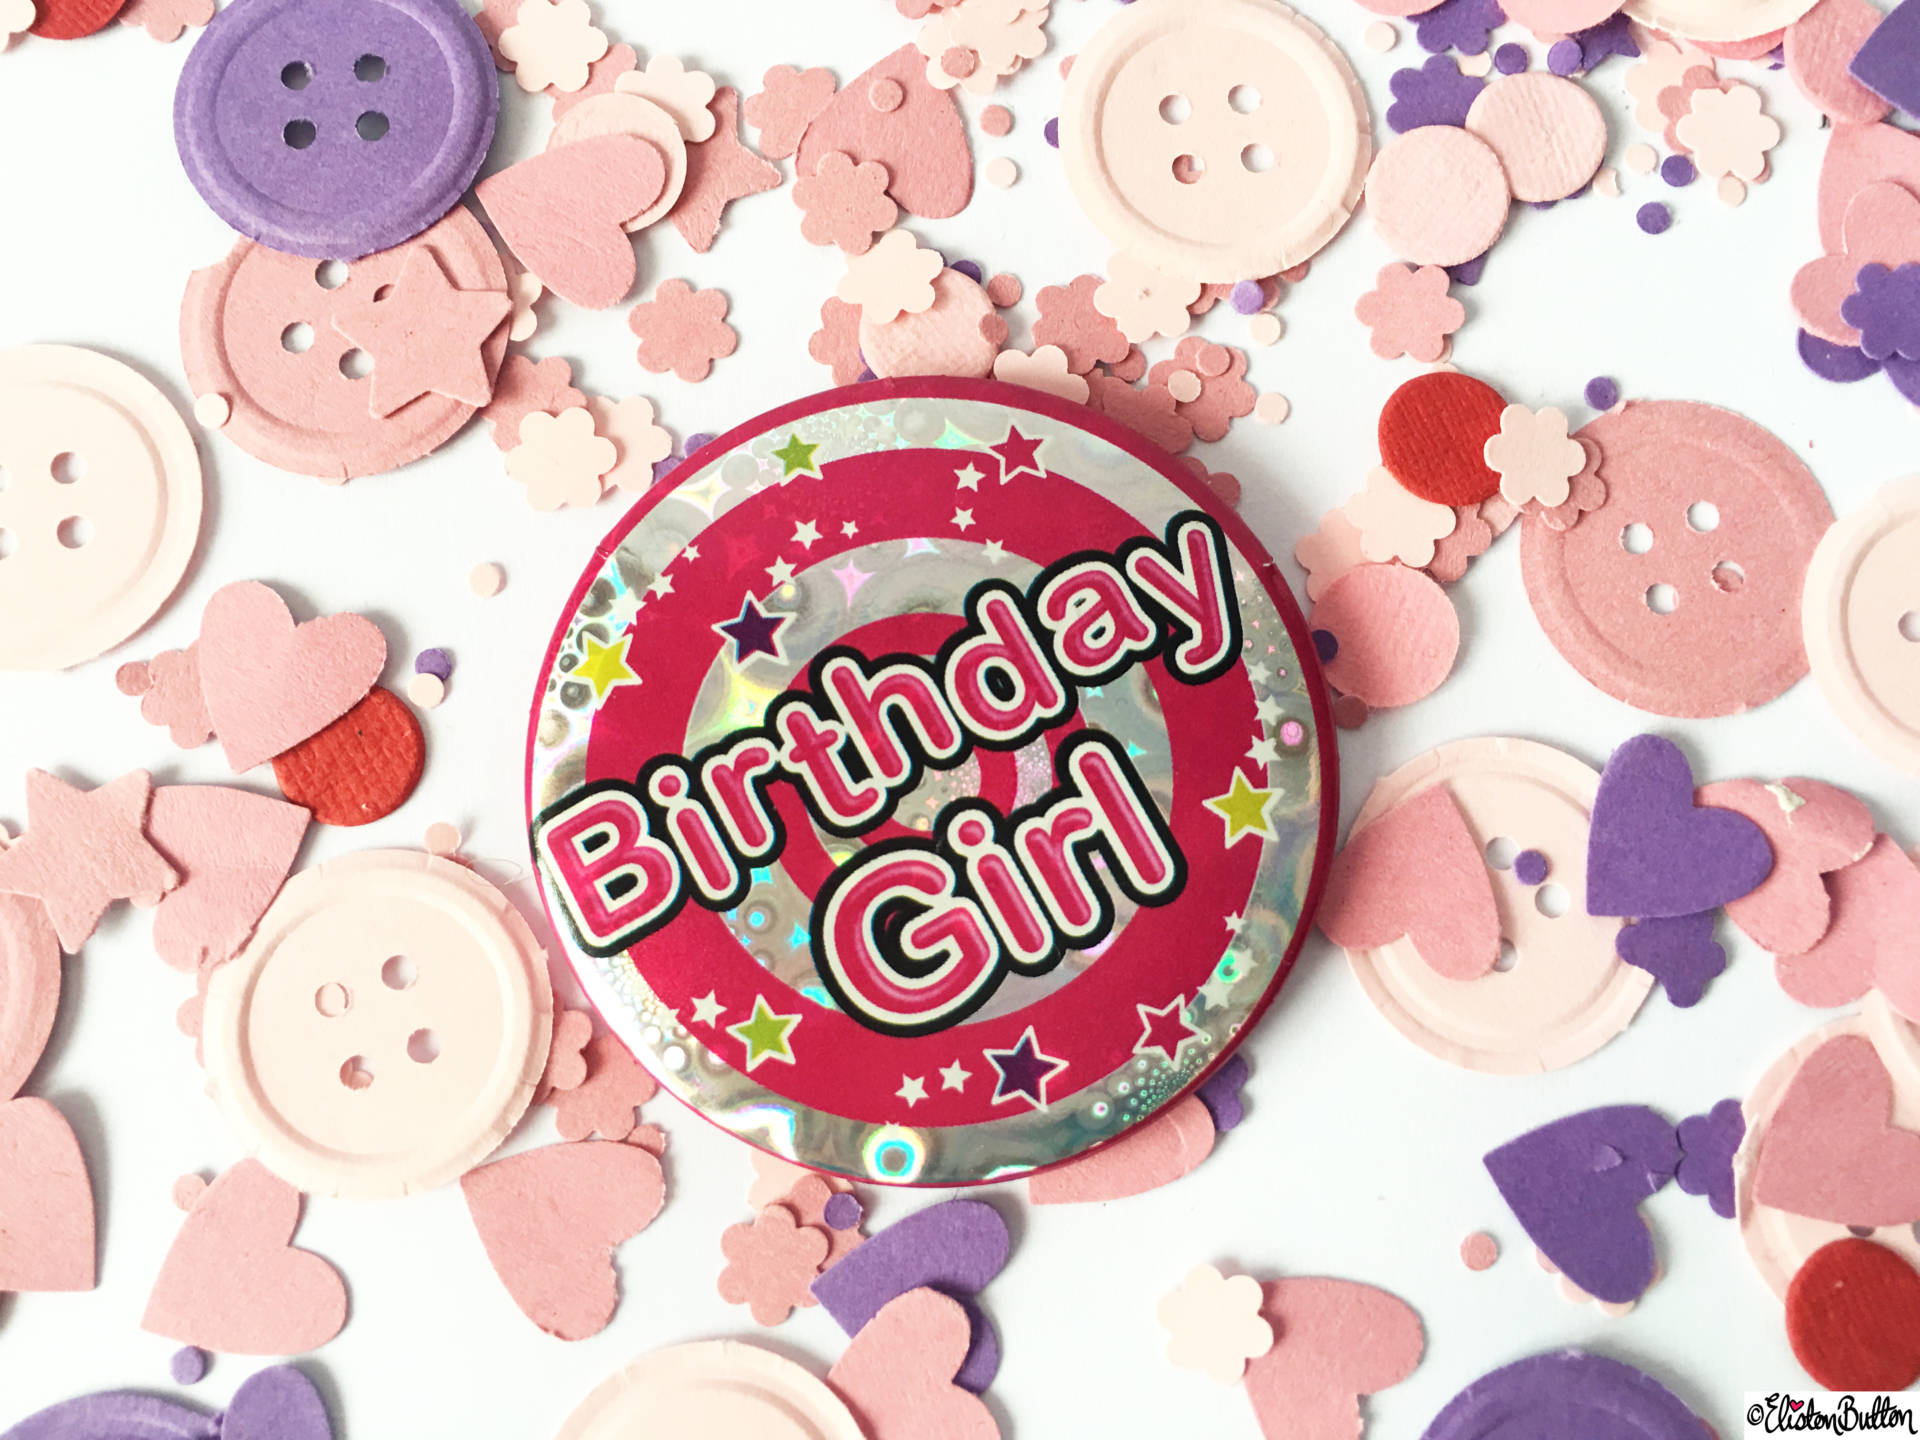 Birthday Girl Badge and Button Confetti - Birthday Adventures at www.elistonbutton.com - Eliston Button - That Crafty Kid – Art, Design, Craft & Adventure.